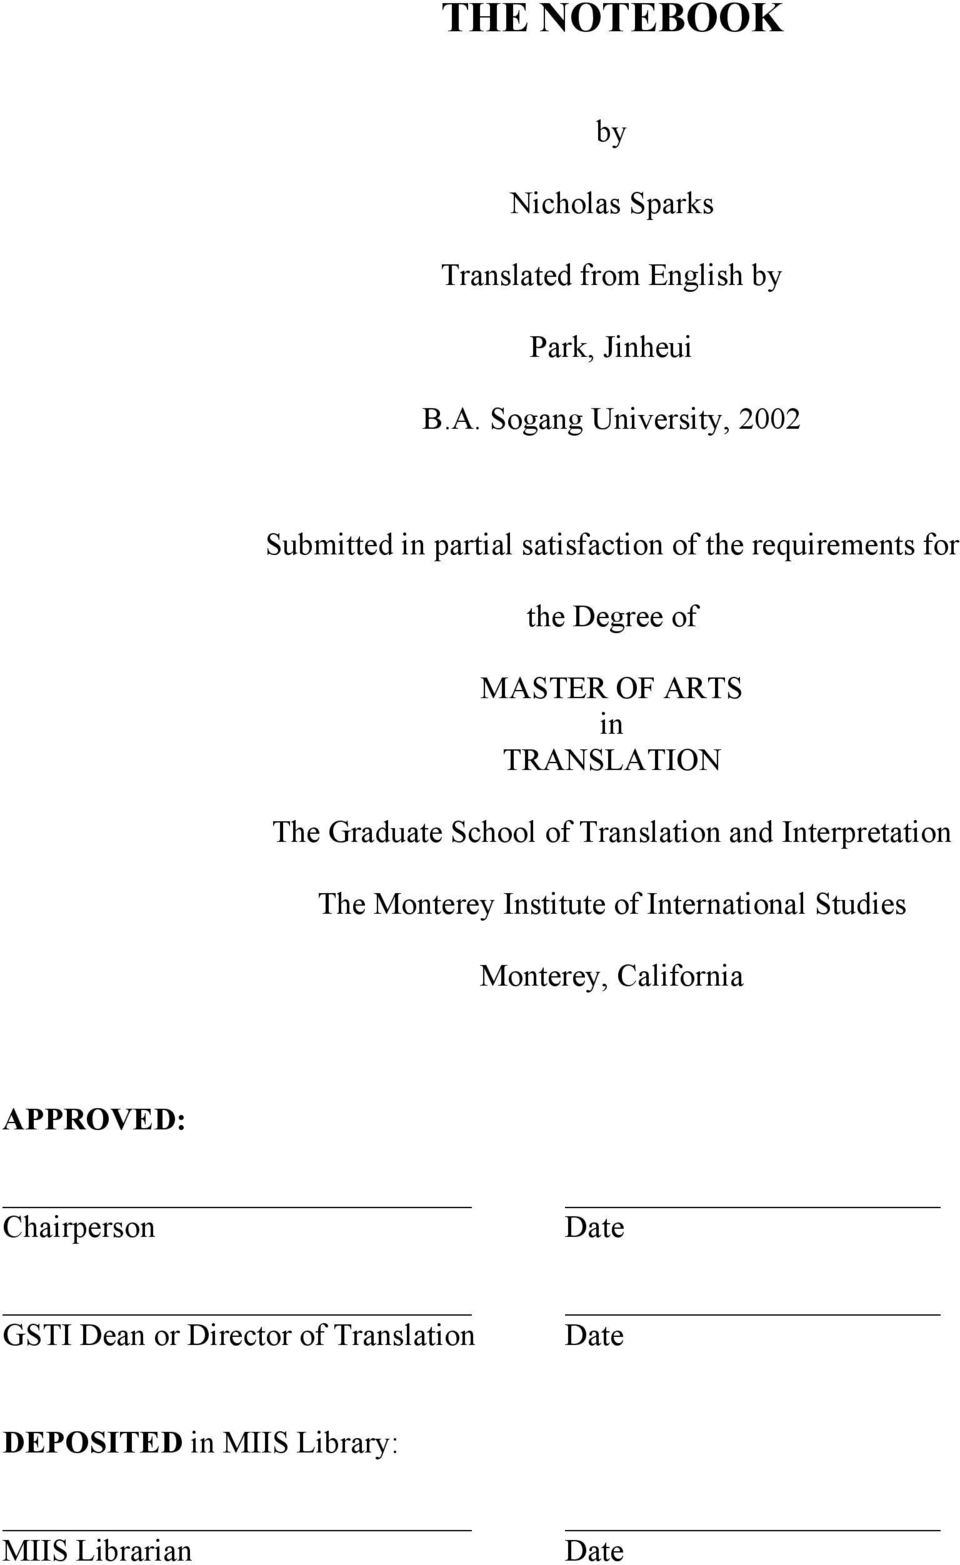 Translation and interpretation thesis